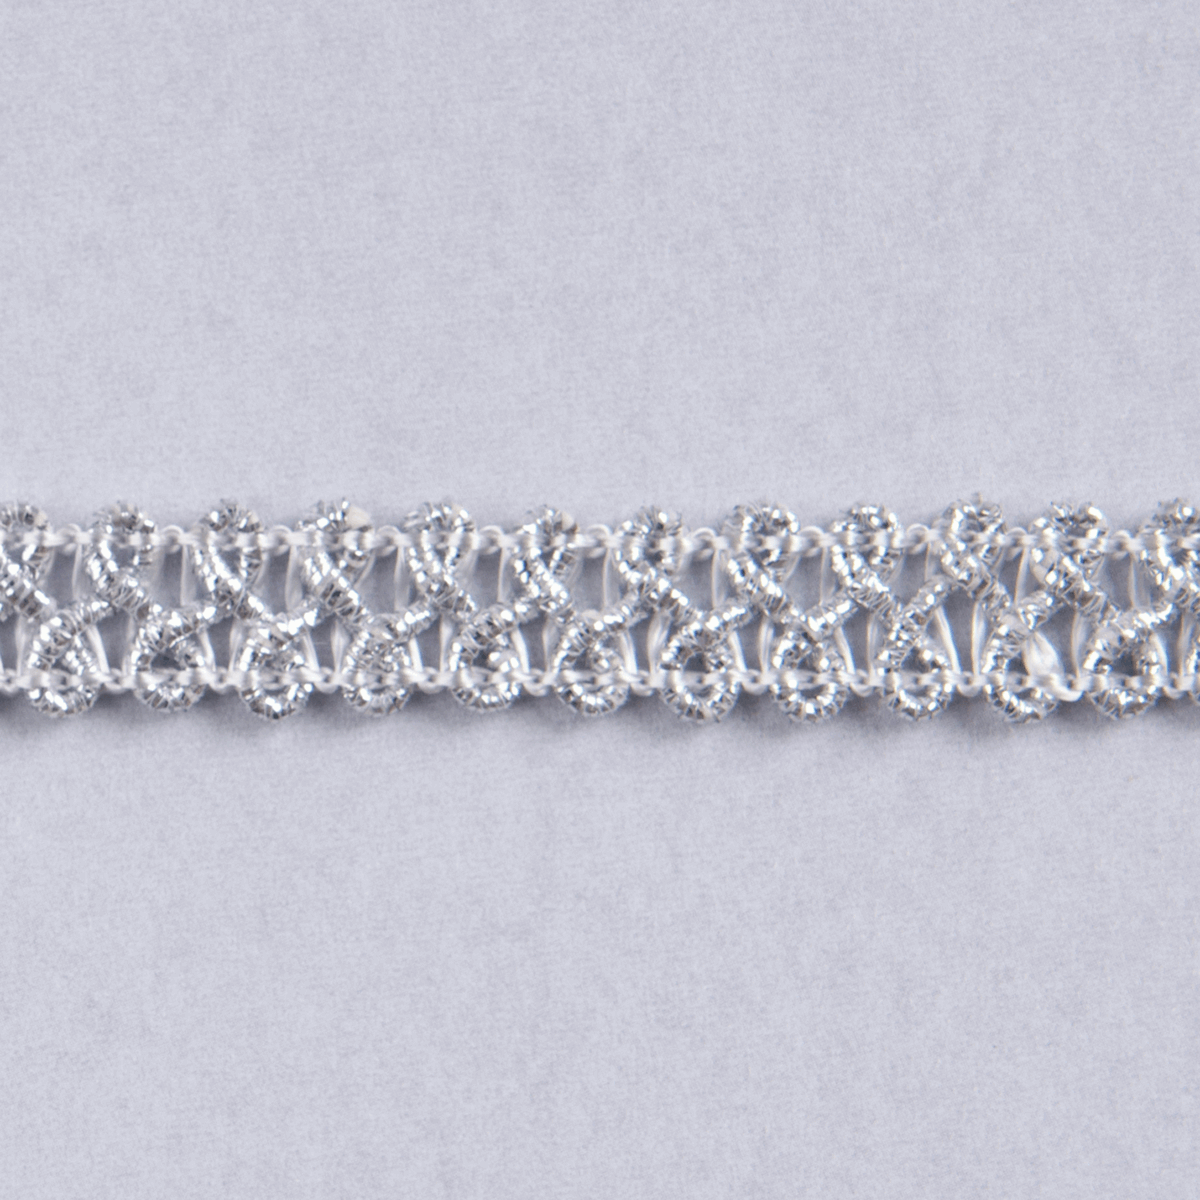 Silver Essential Trimmings 1m x 10mm Metallic Braid Sparkly Trim Plait like